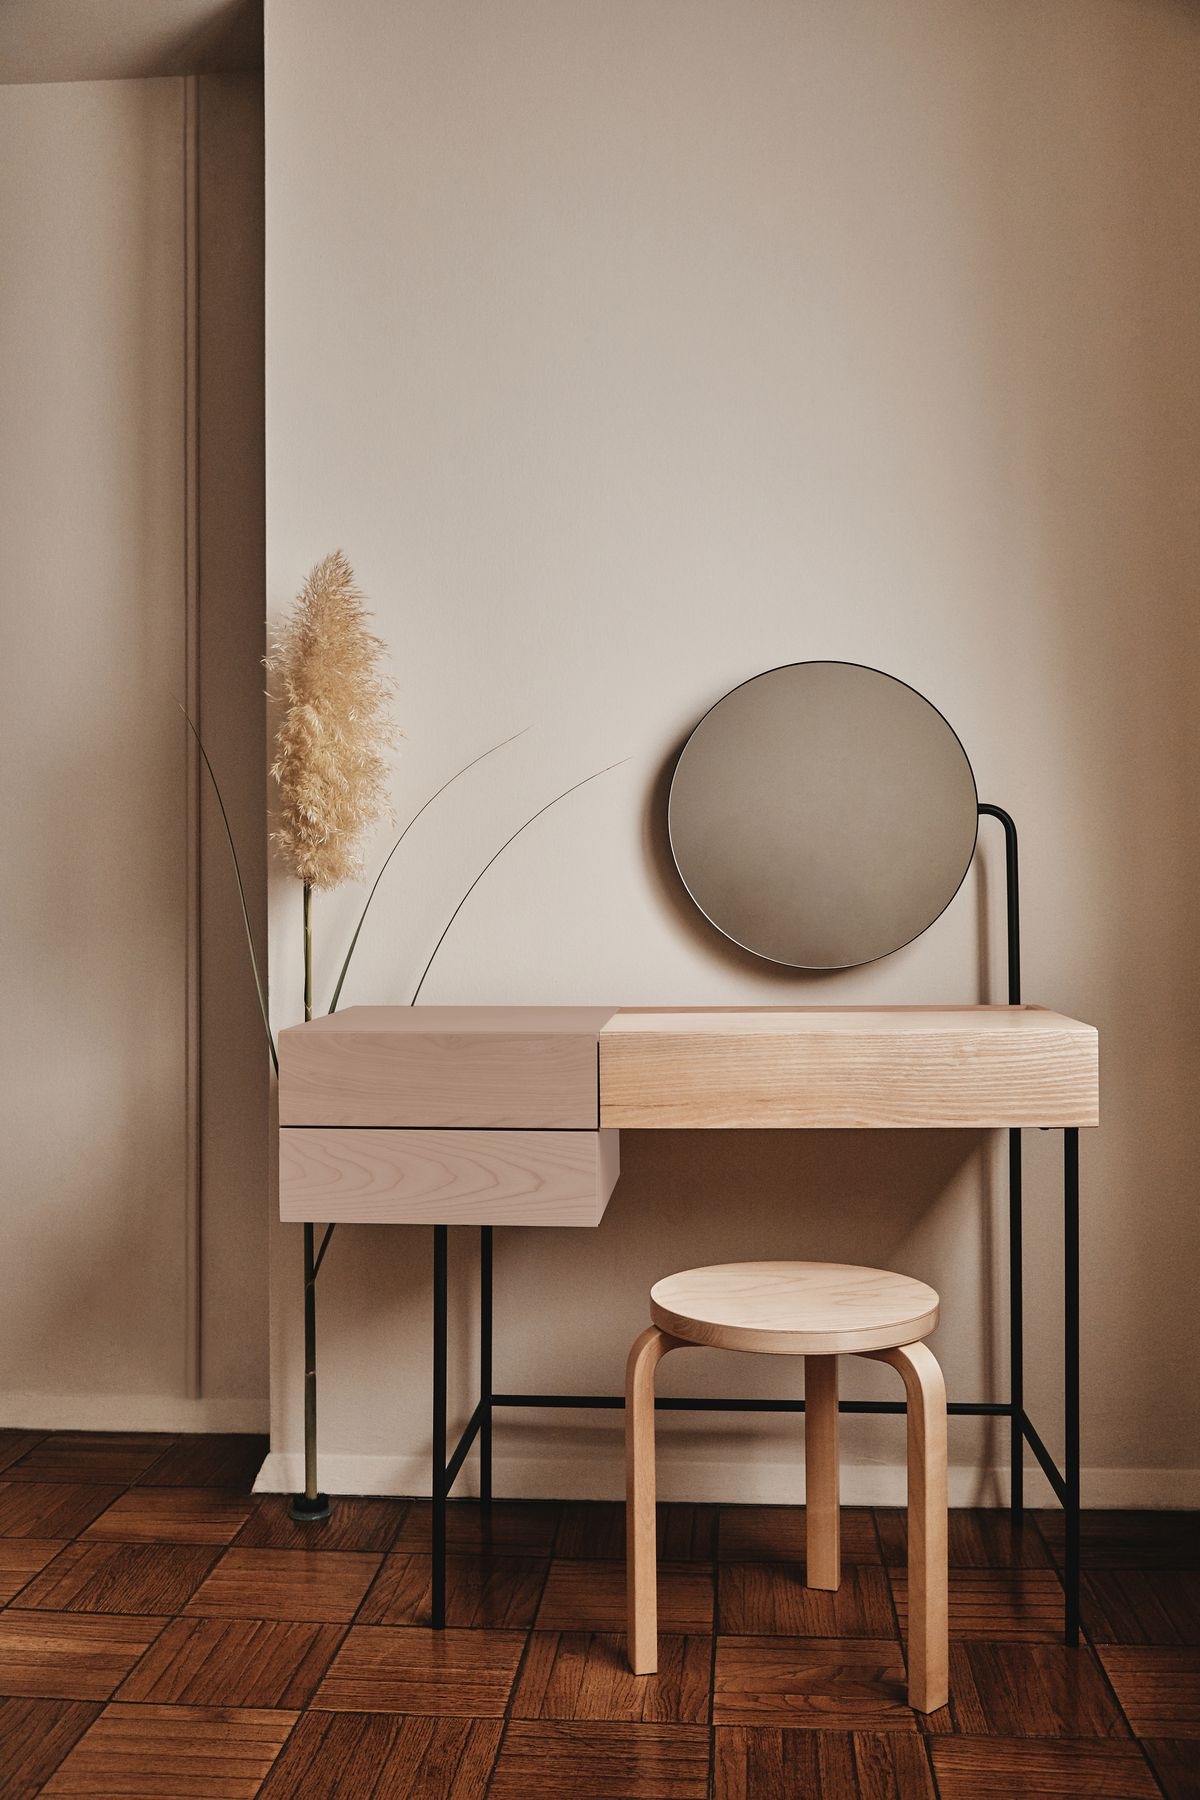 A pale wood desk with blush drawers and a round mirror.